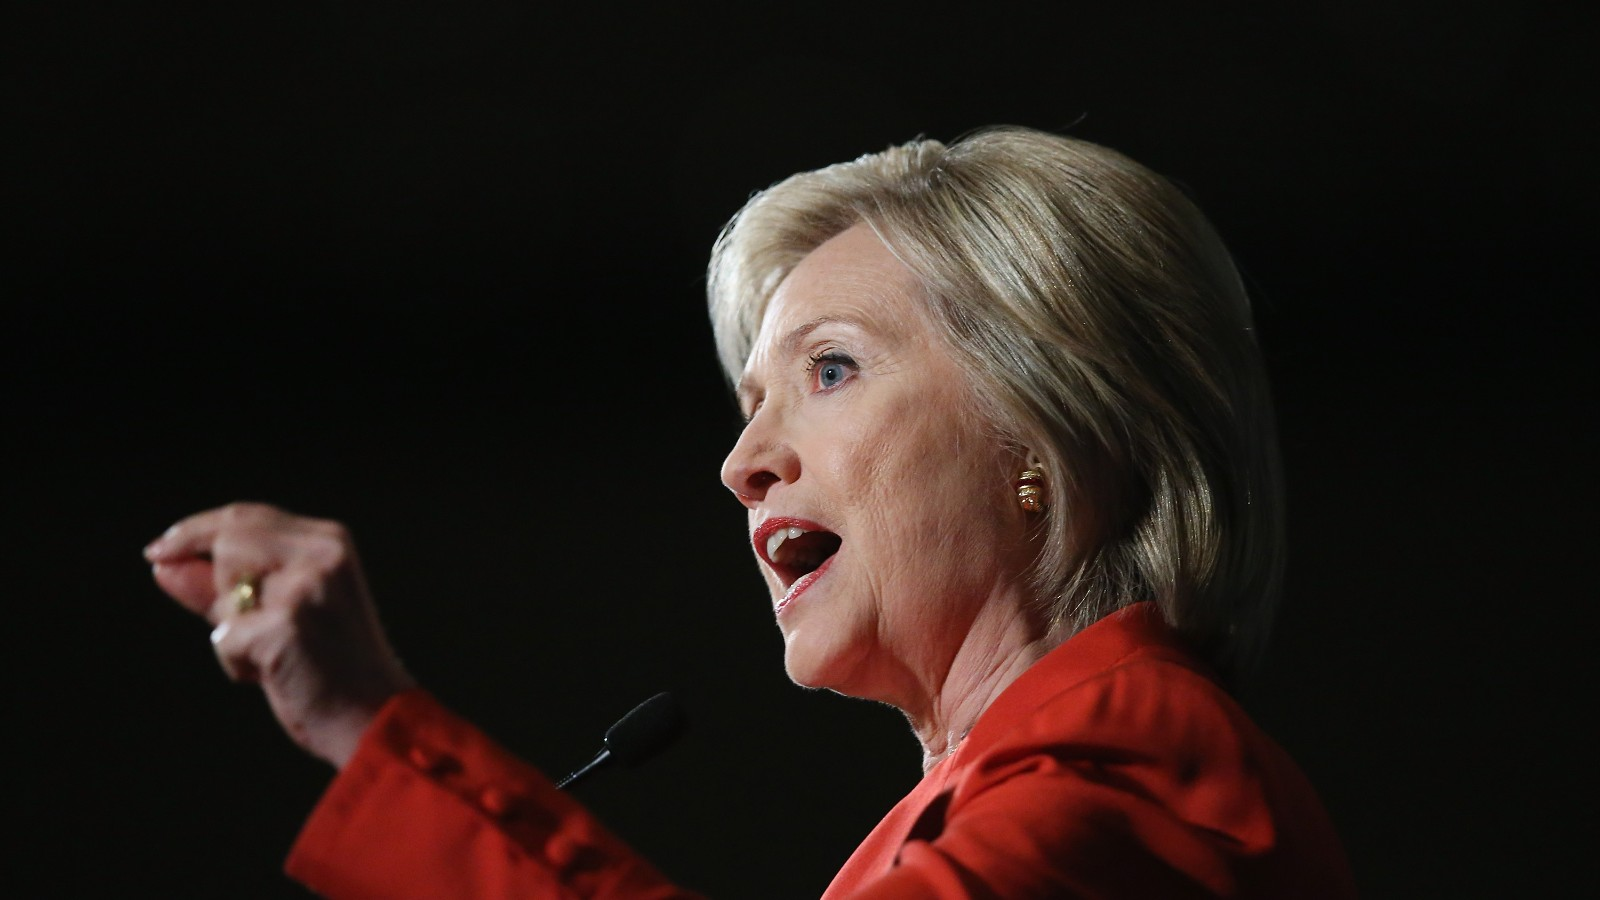 Hillary Clinton Admits To Admiring A Racist Bigot - Justifies It Publicly